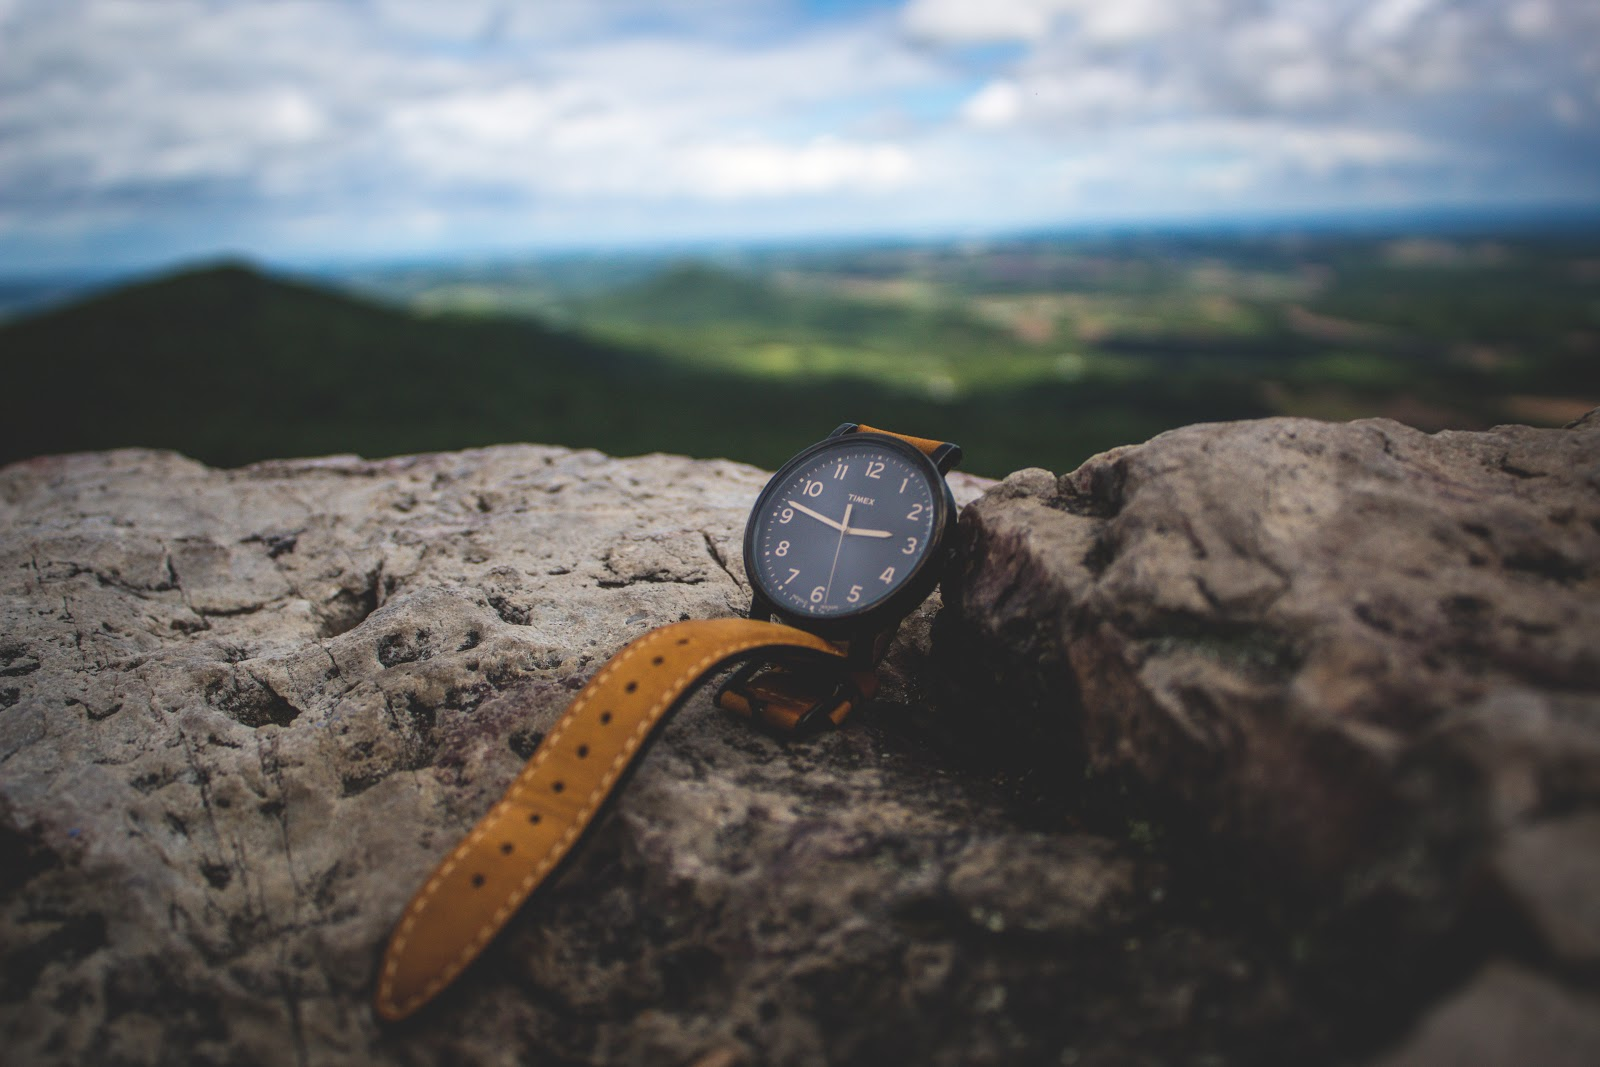 a watch placed on a rock